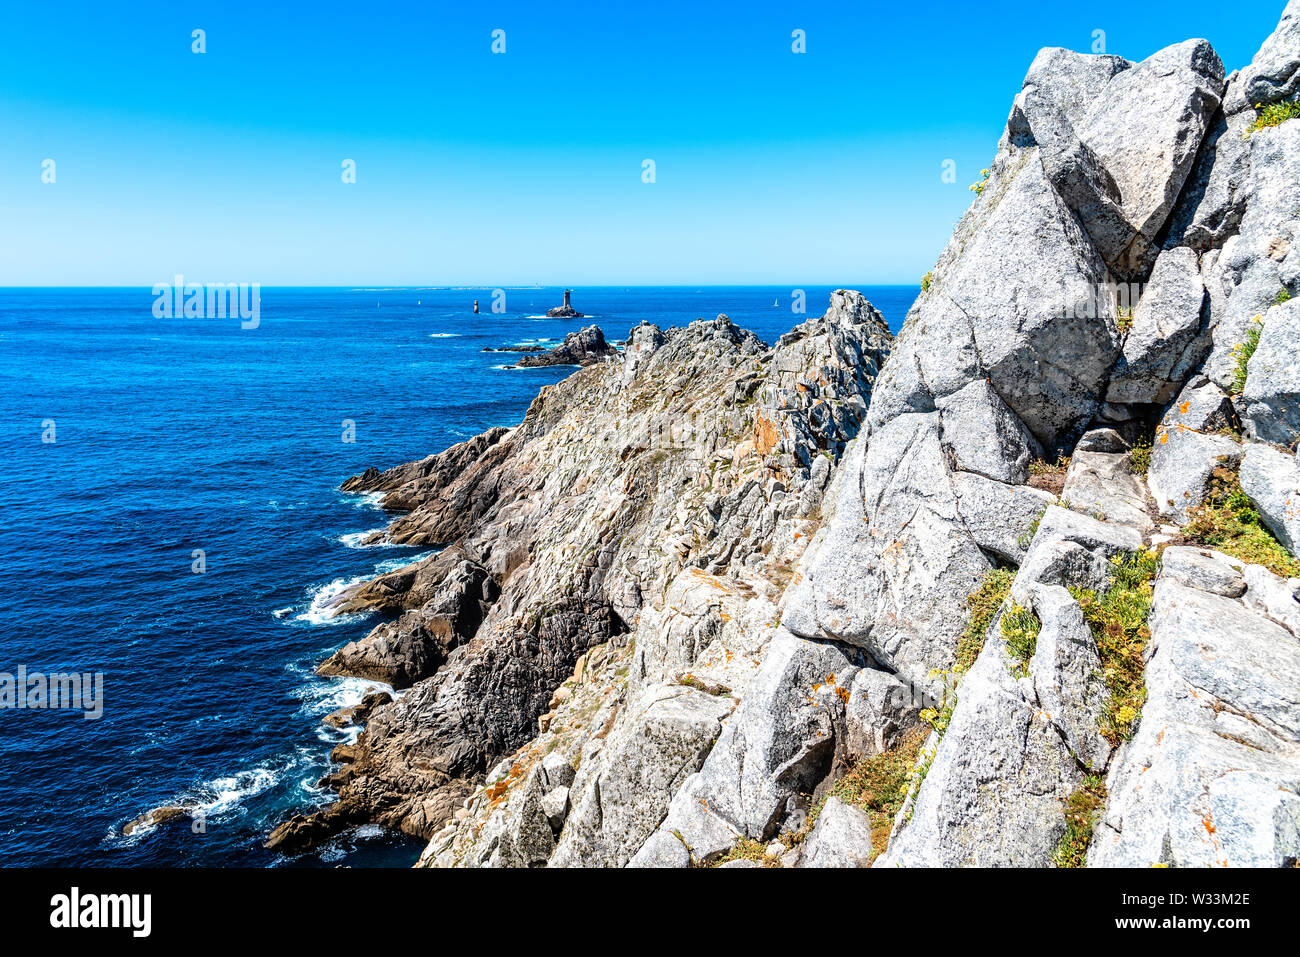 Scenic view of The Pointe du Raz. It is a promontory that extends into the Atlantic from western Brittany, in France. Stock Photo